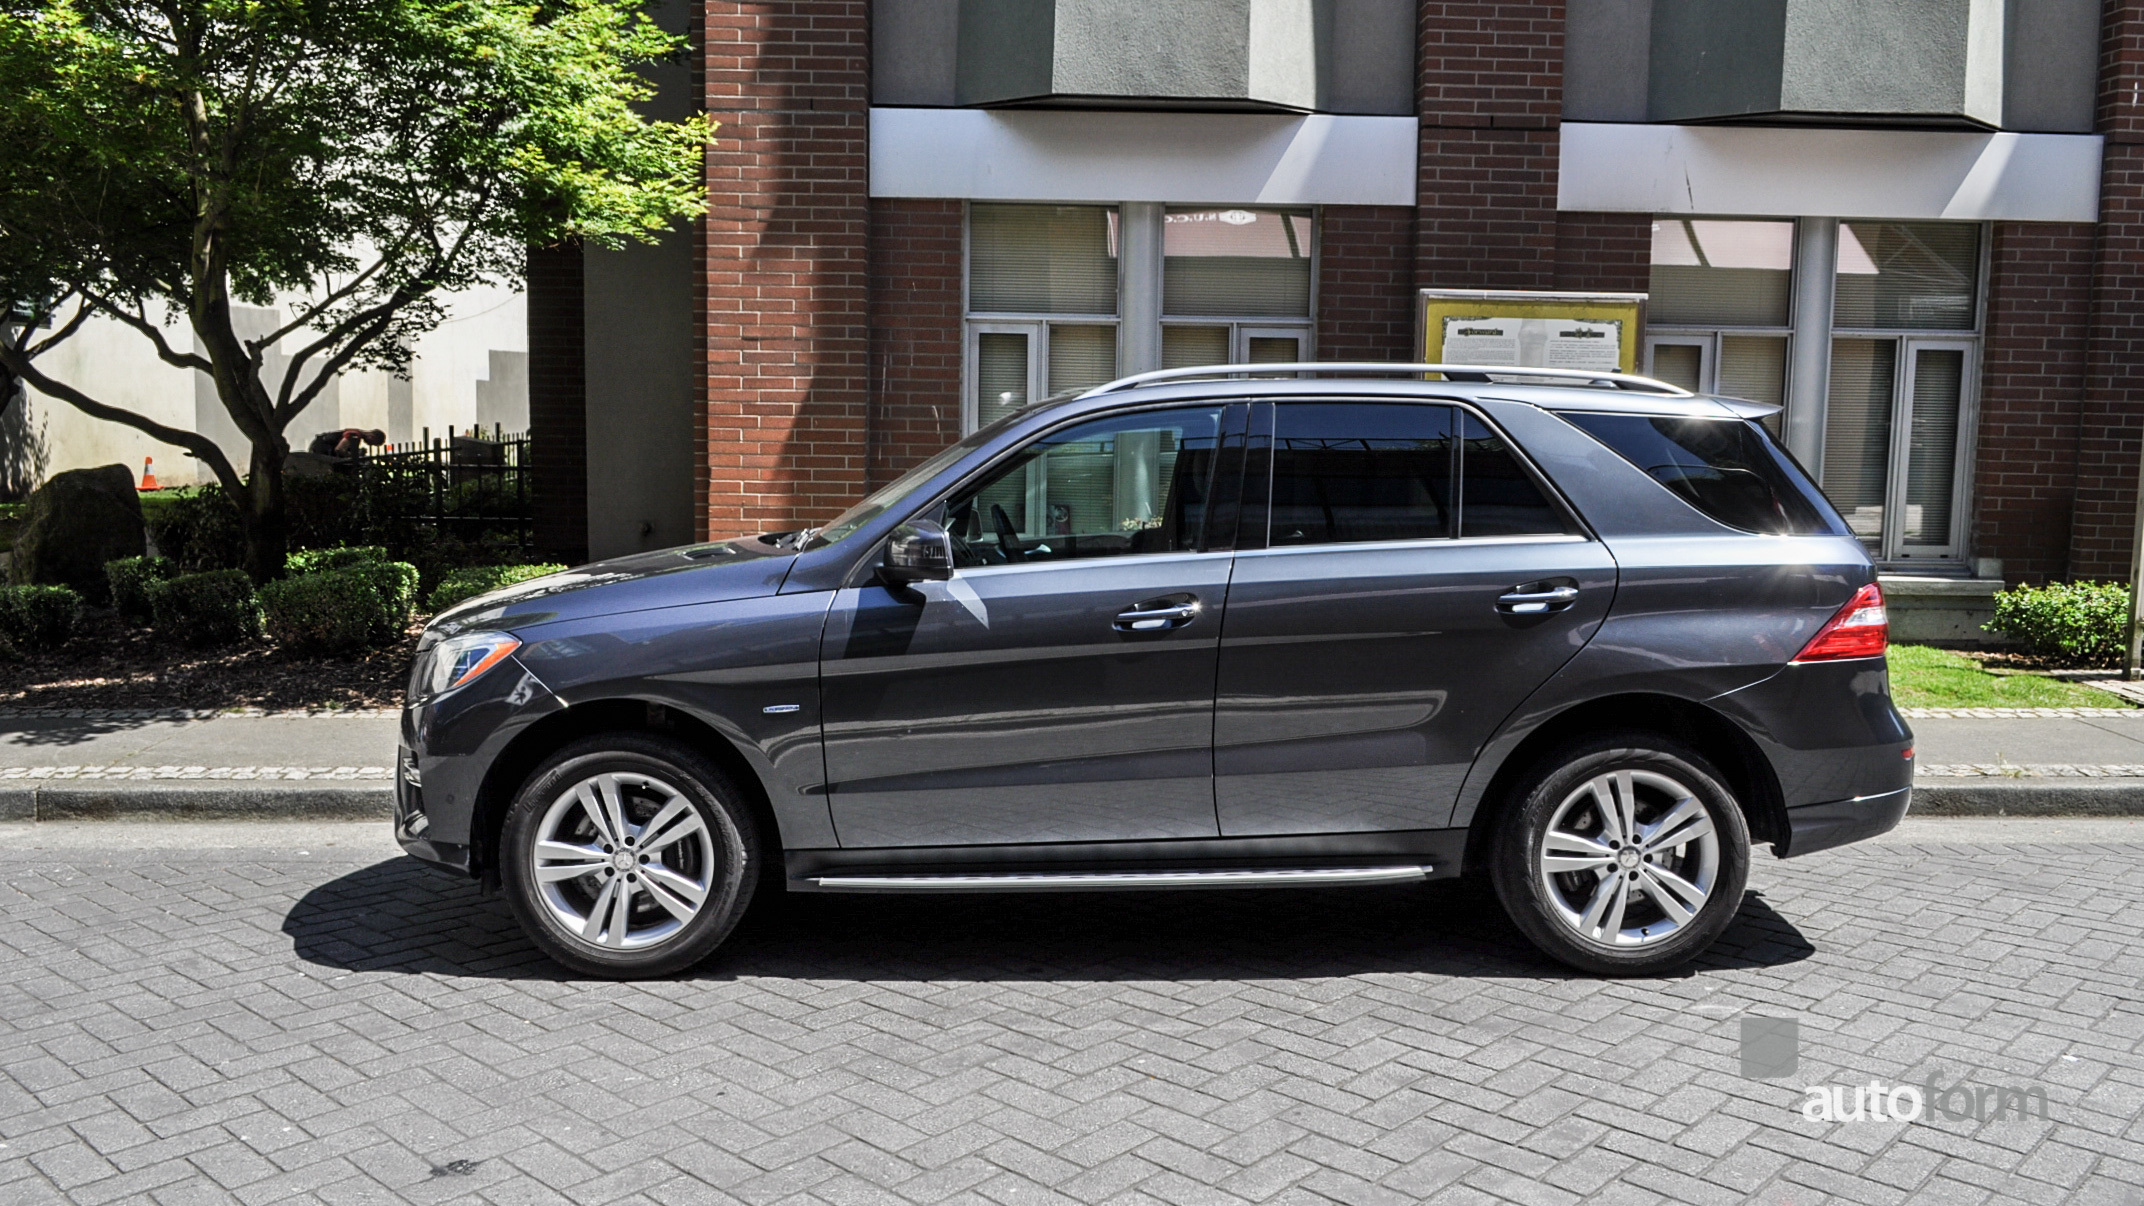 2012 mercedes benz ml350 bluetec 4matic autoform for 2012 mercedes benz ml350